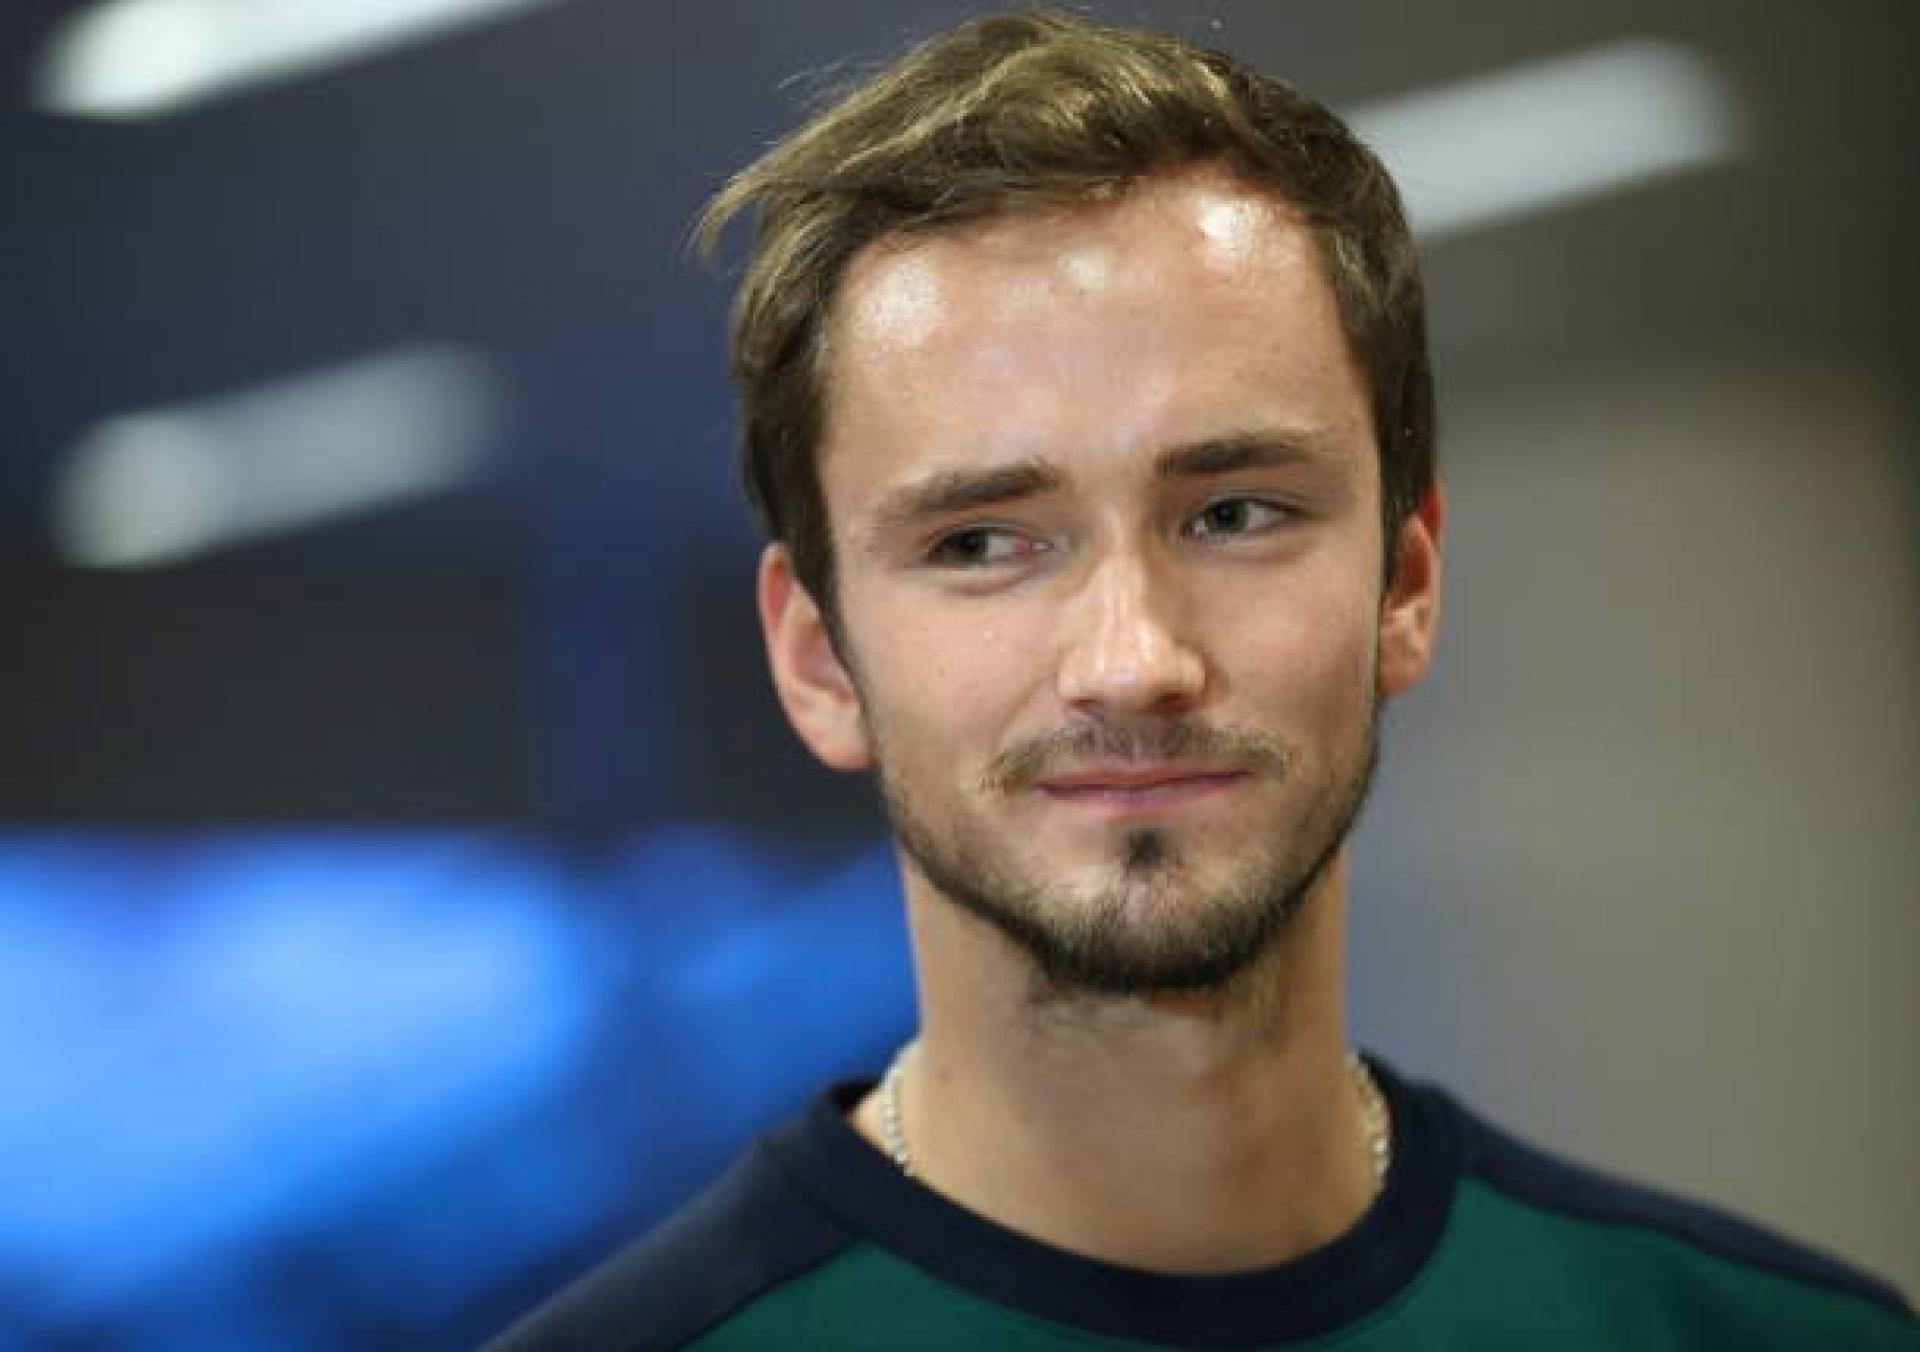 Daniil Medvedev: 'I am exhausted physically and mentally'